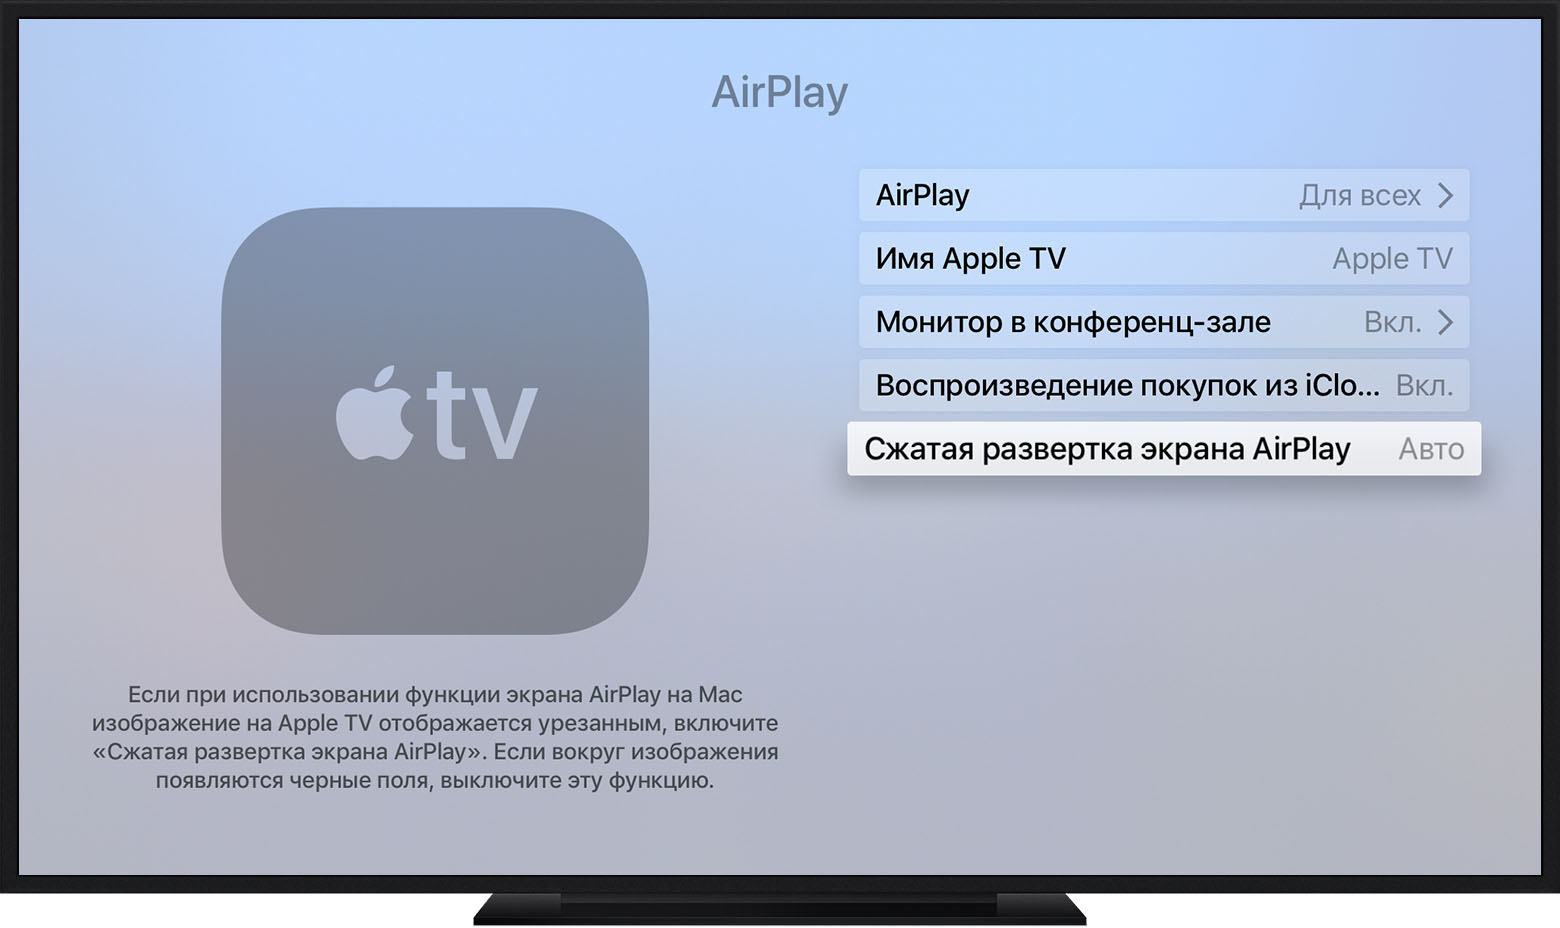 airplay on apple tv from mac